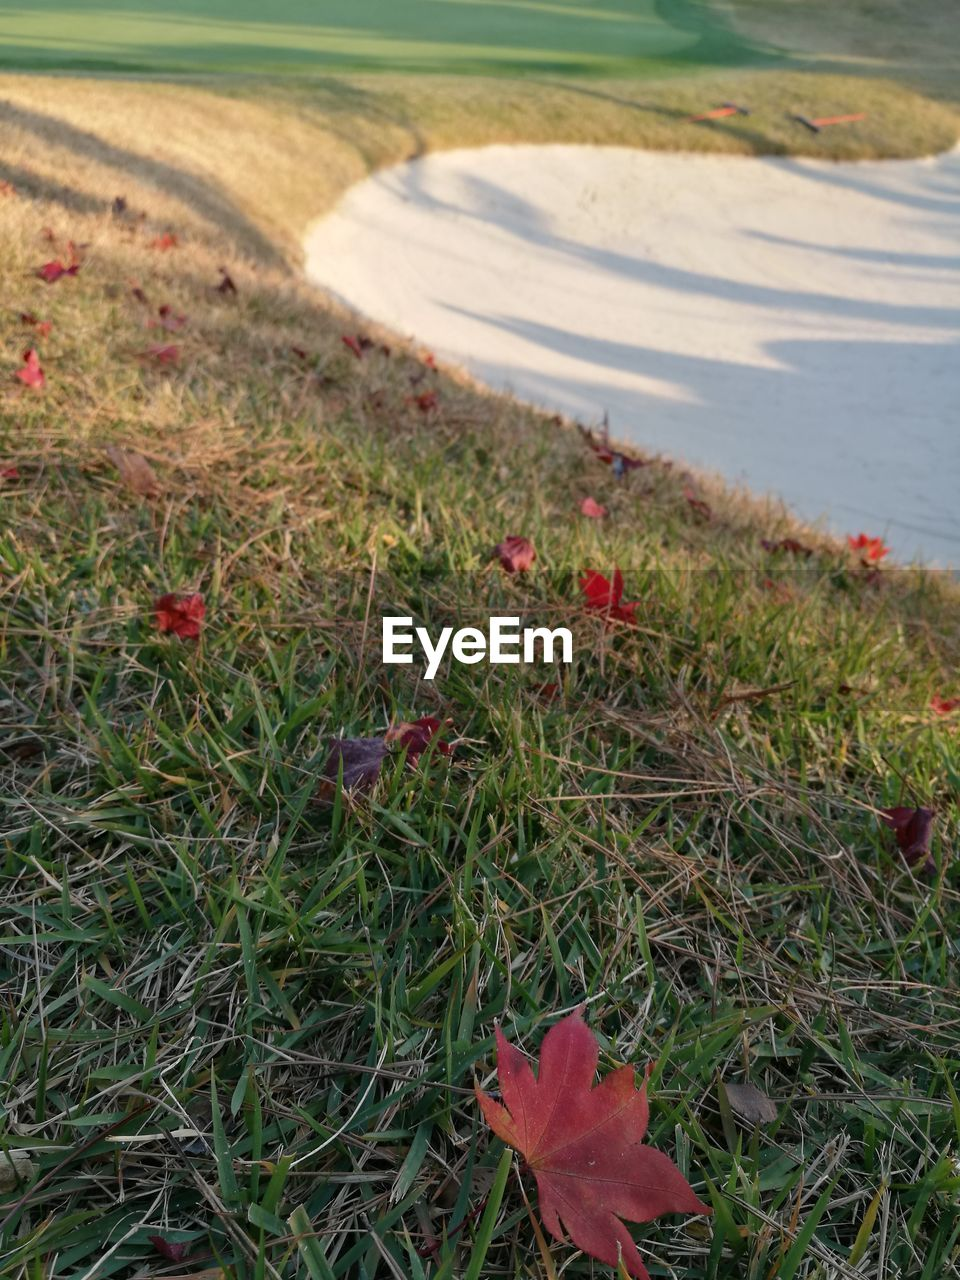 grass, nature, growth, field, red, day, high angle view, no people, outdoors, beauty in nature, green color, tranquility, plant, flower, water, landscape, scenics, close-up, freshness, flower head